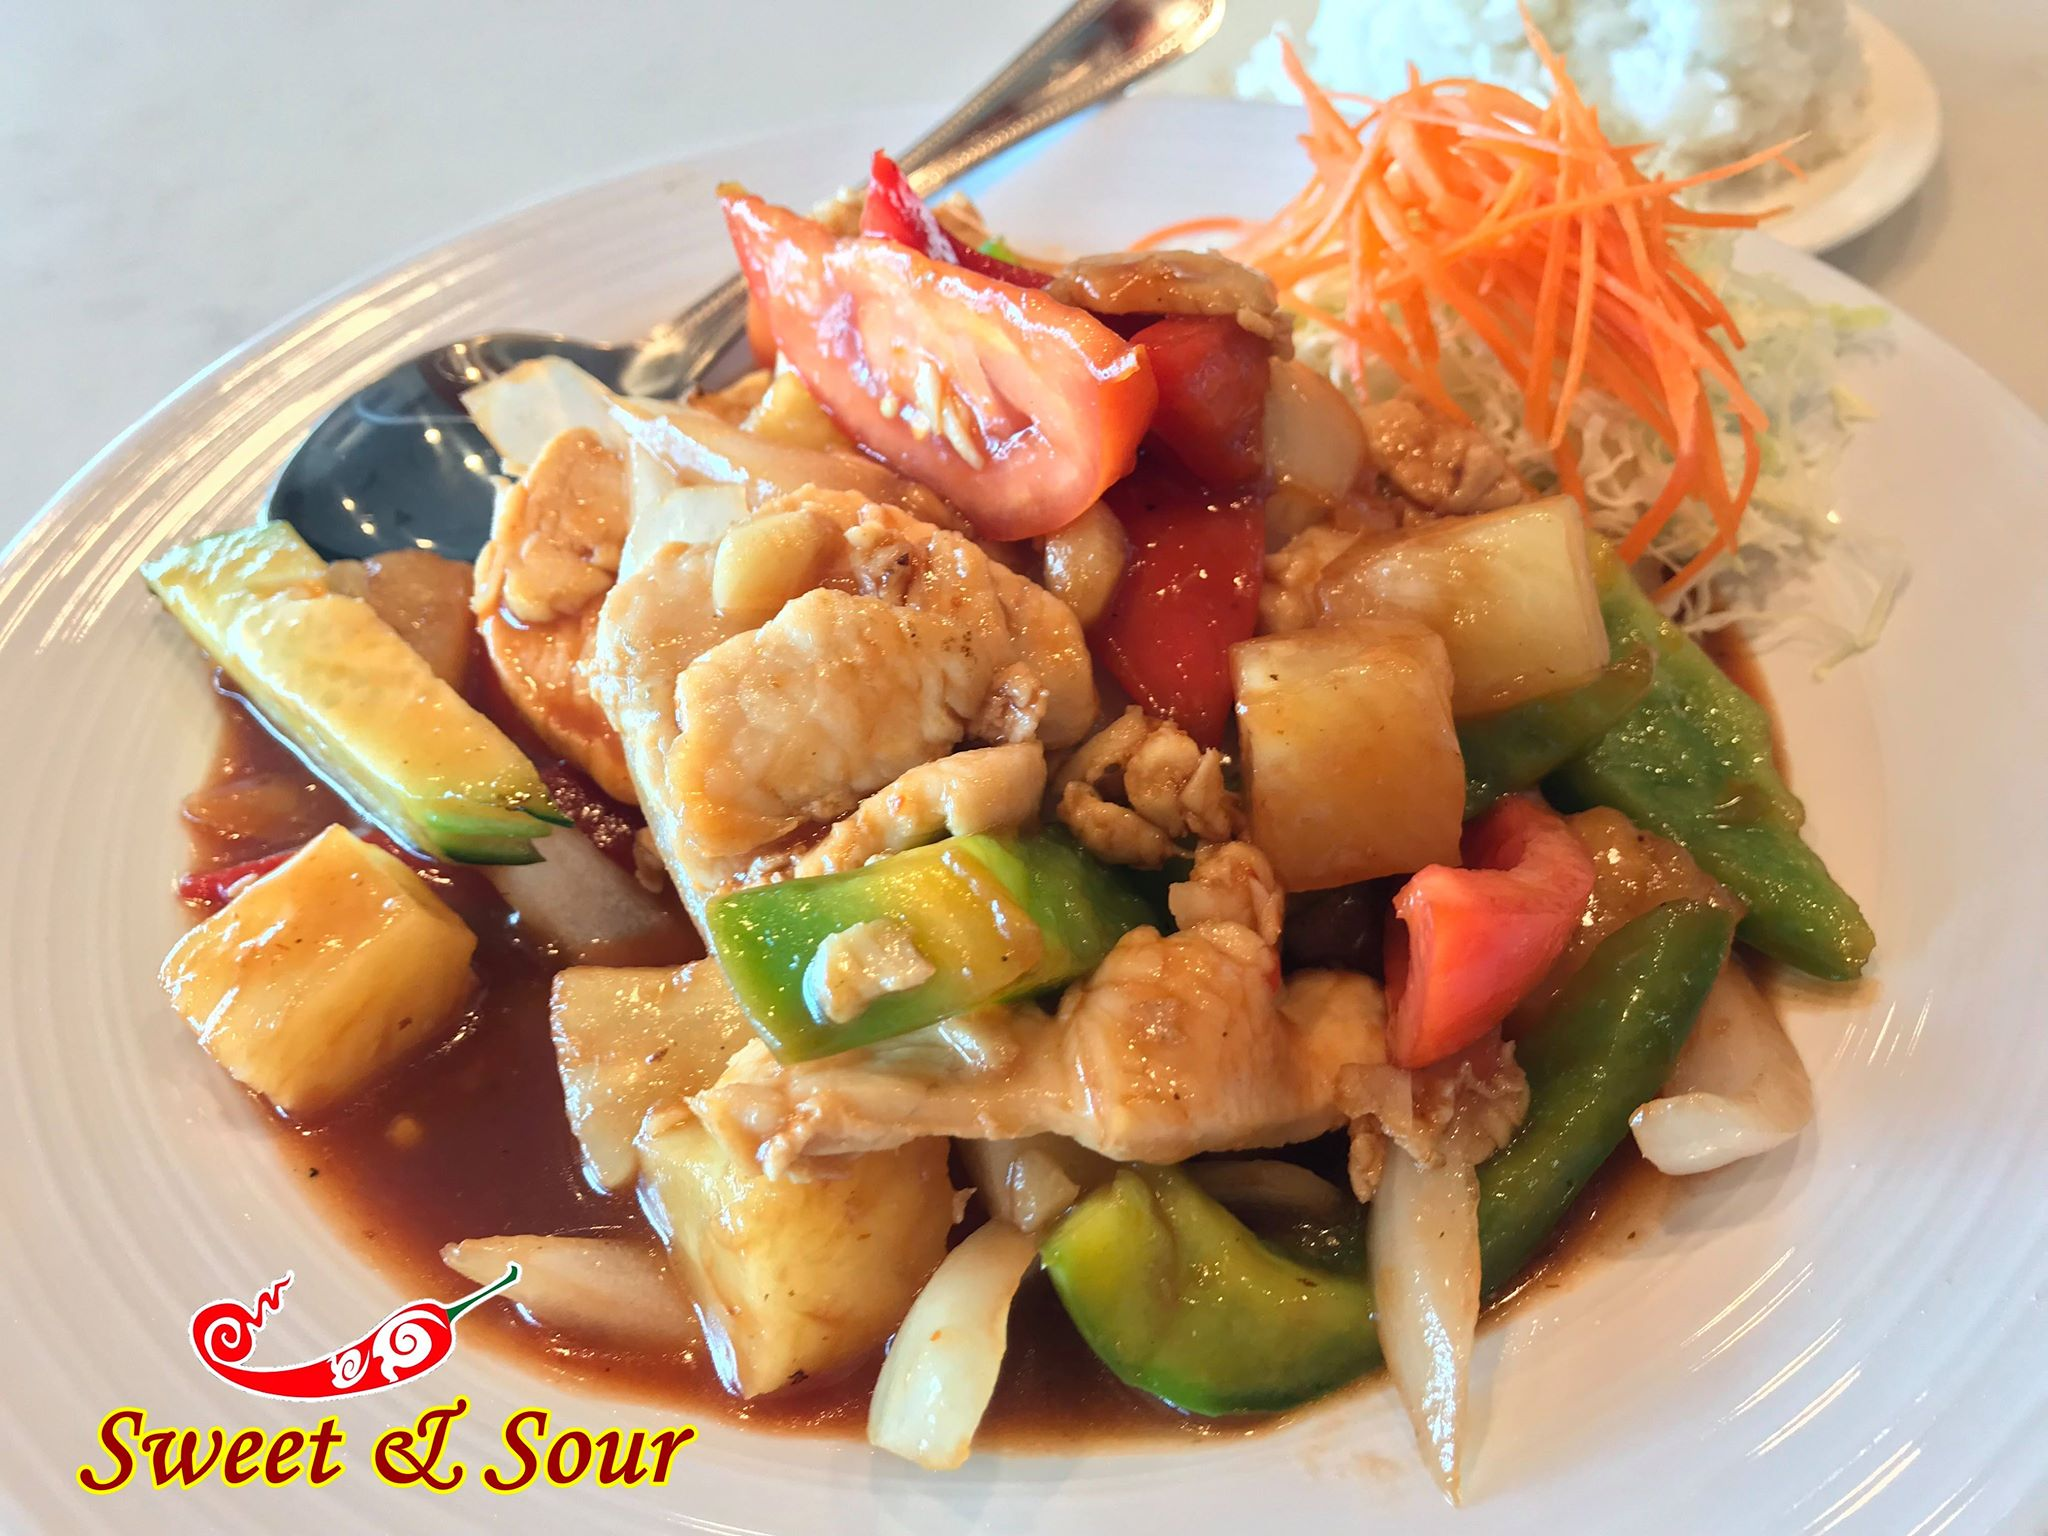 Sweet Sour (Lunch) Image